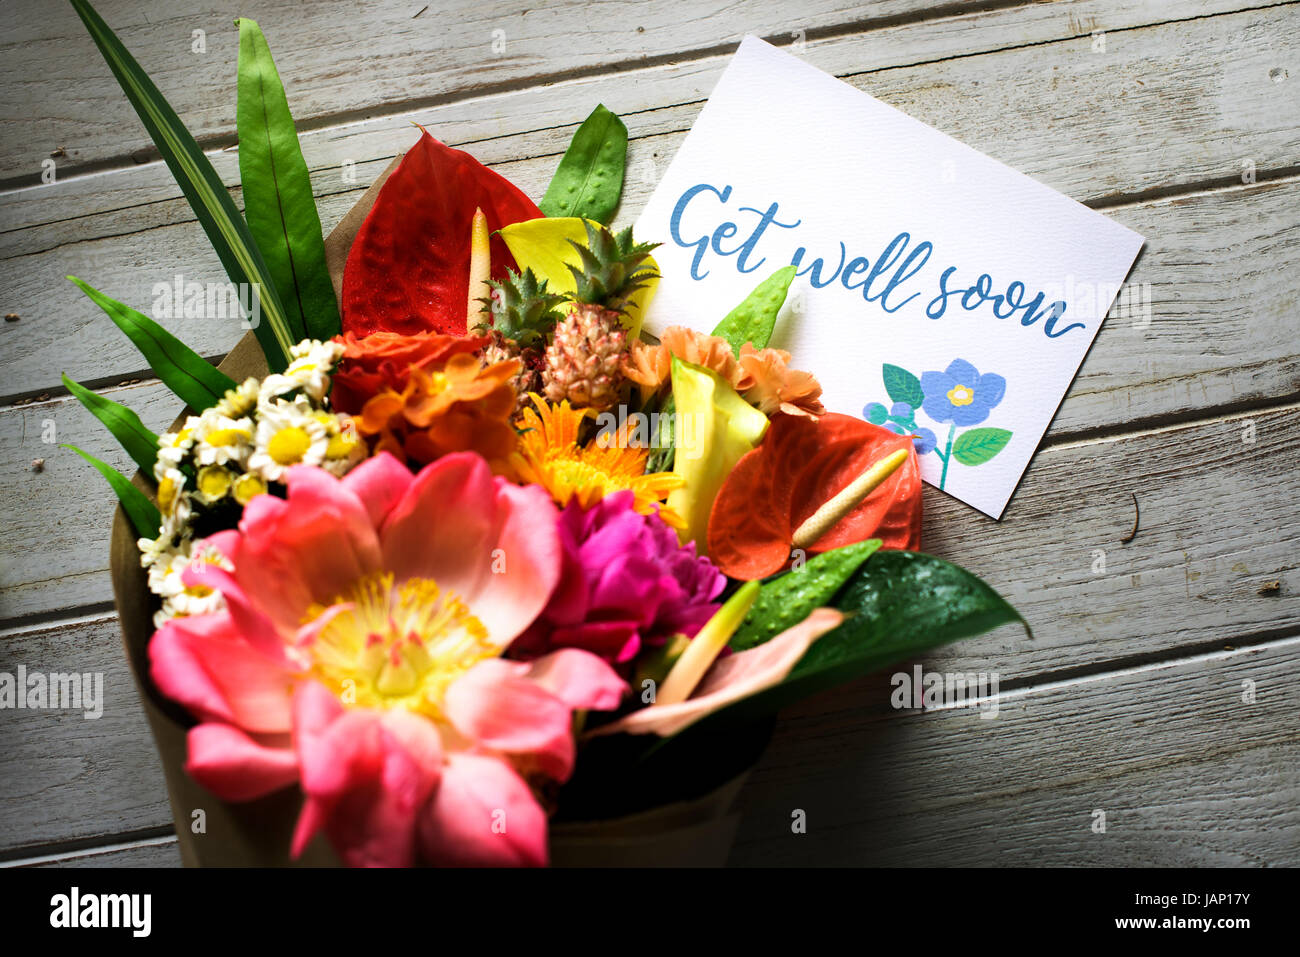 Get well soon message with bouquet Stock Photo: 144313455 - Alamy